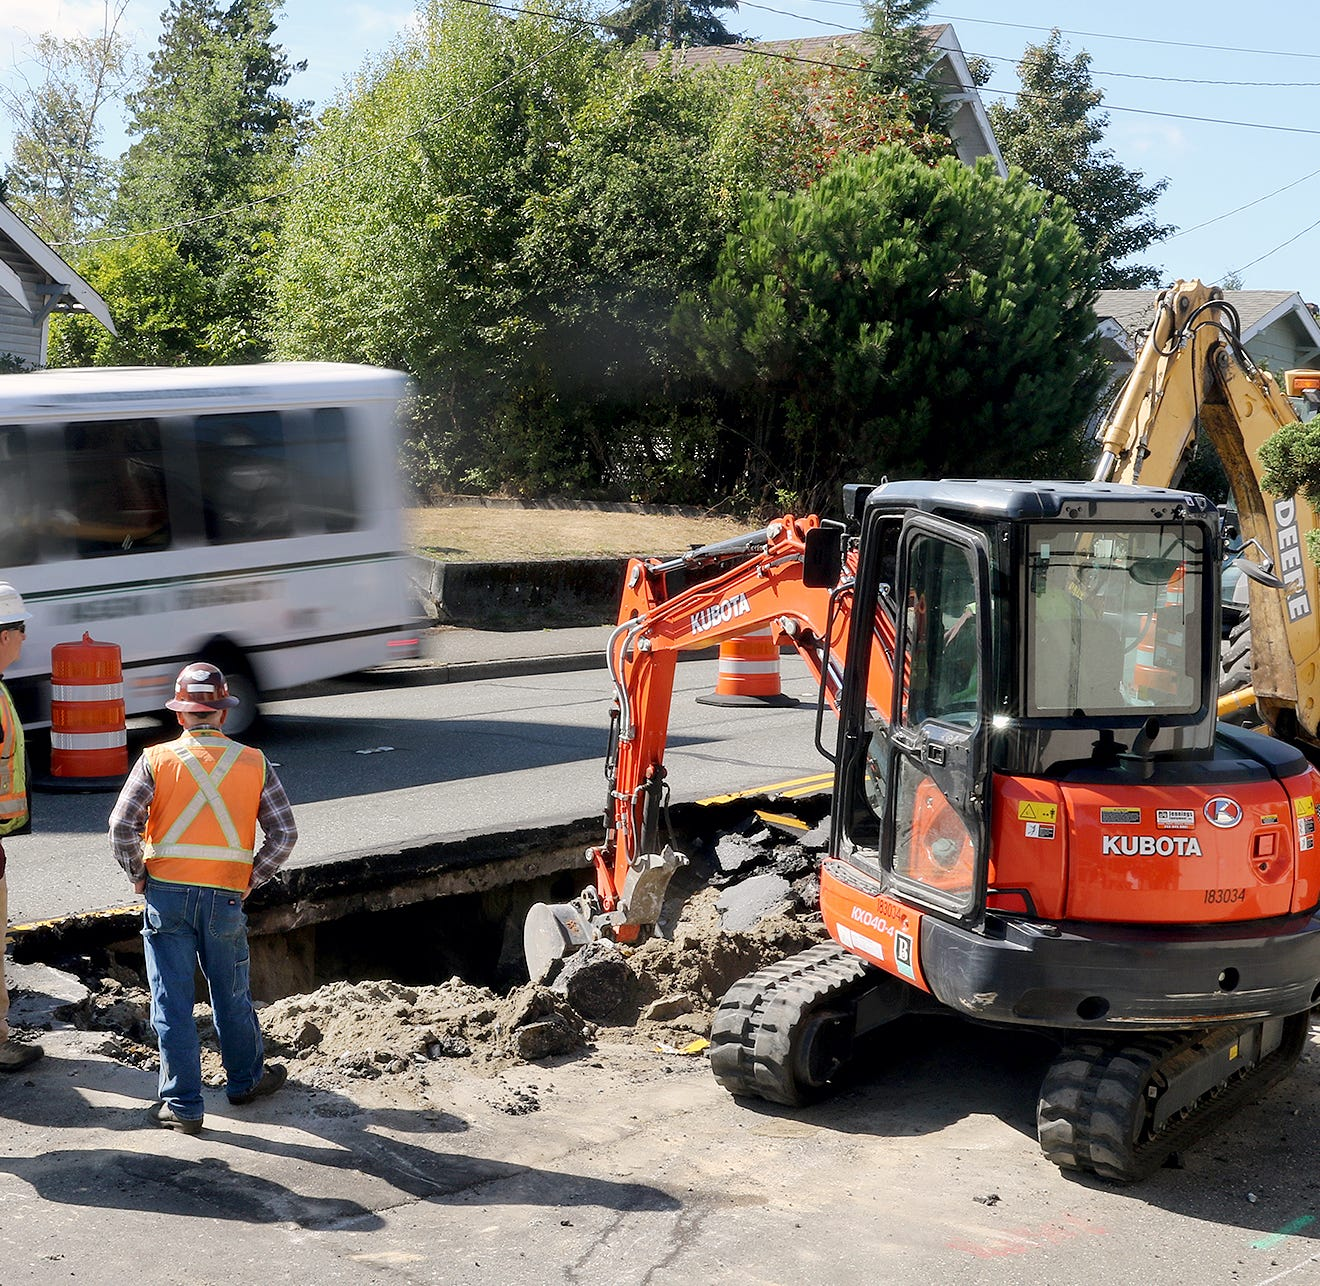 Sinkhole slowing traffic on Burwell Street in Bremerton